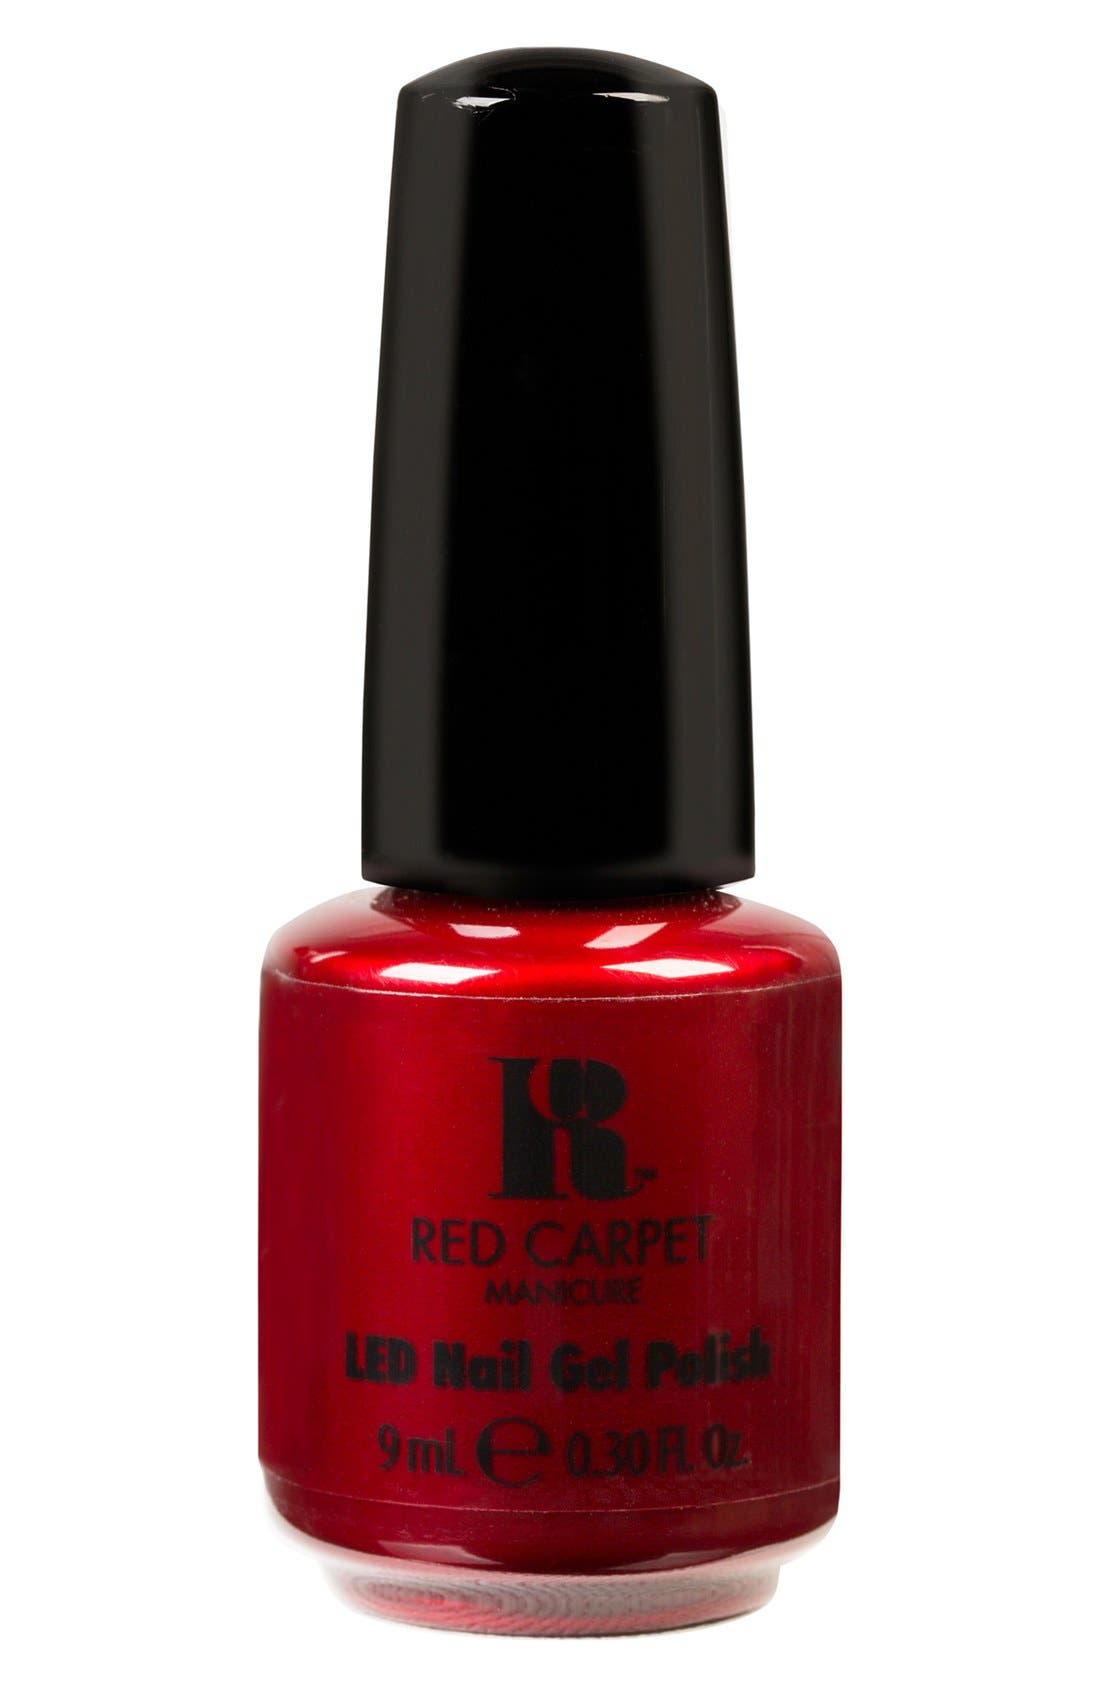 Red Carpet Manicure LED Nail Gel Polish